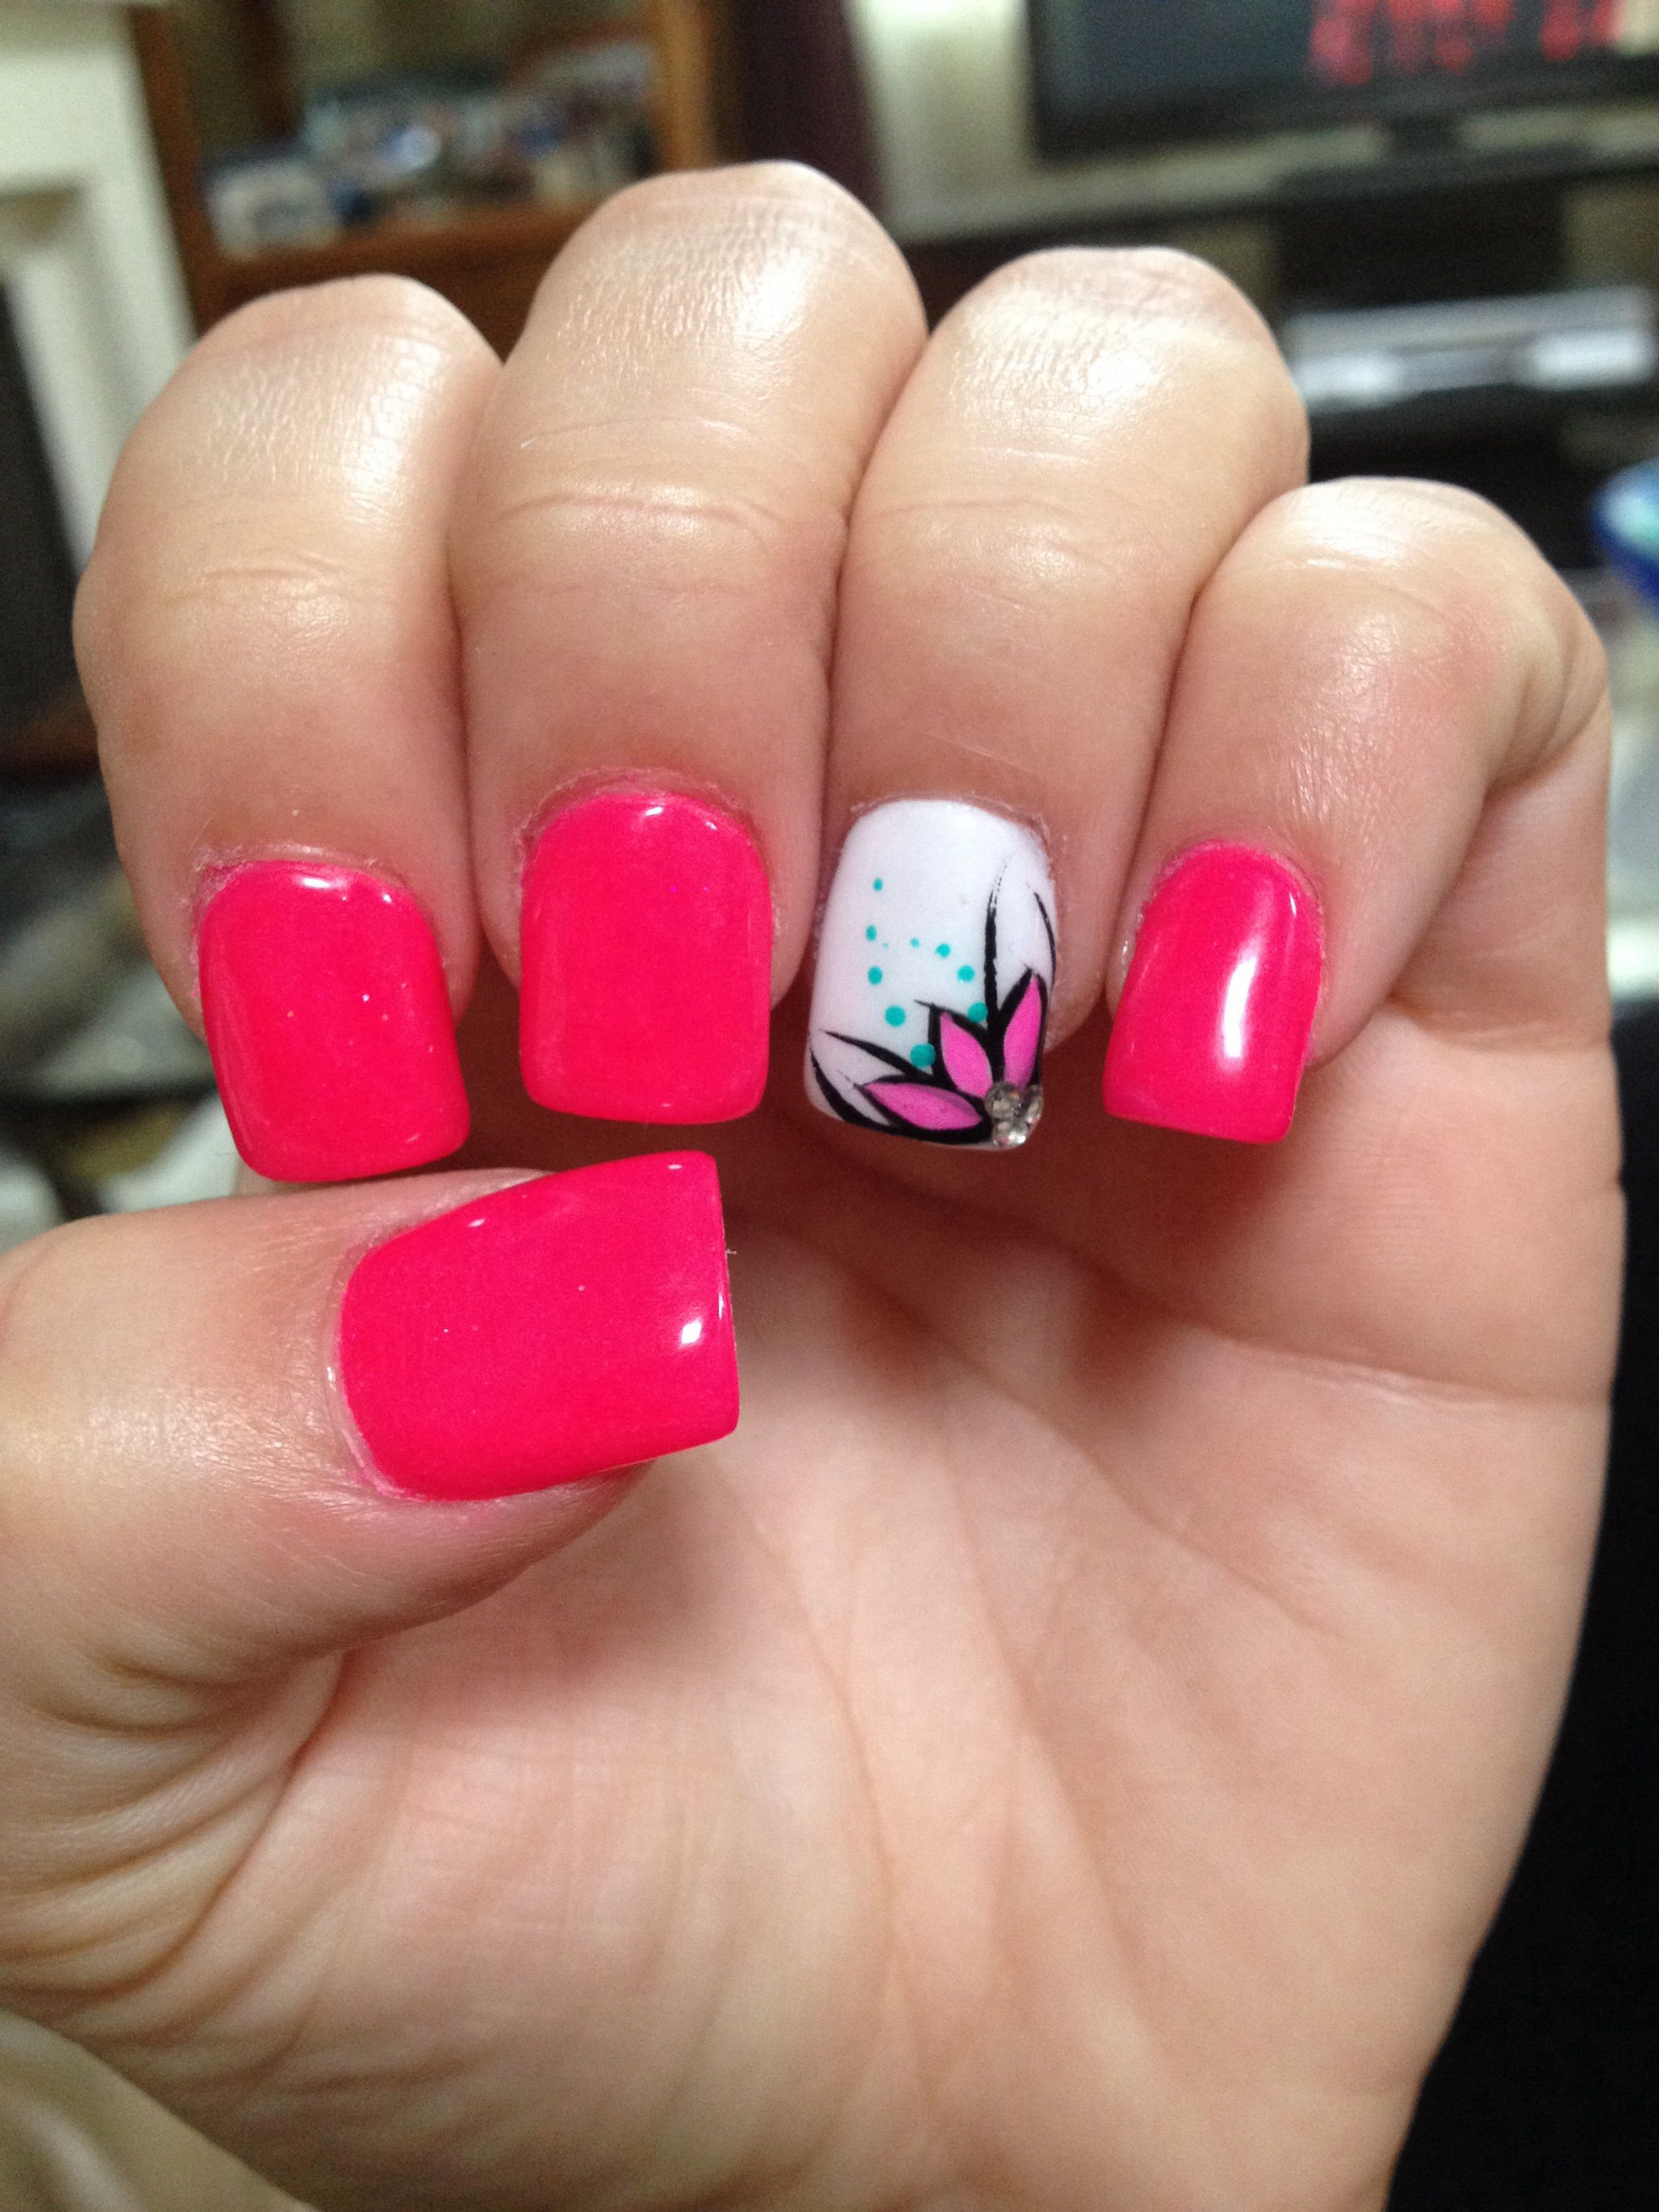 Hot Pink Nails With Flower Design Nail Styles Pinterest Hot